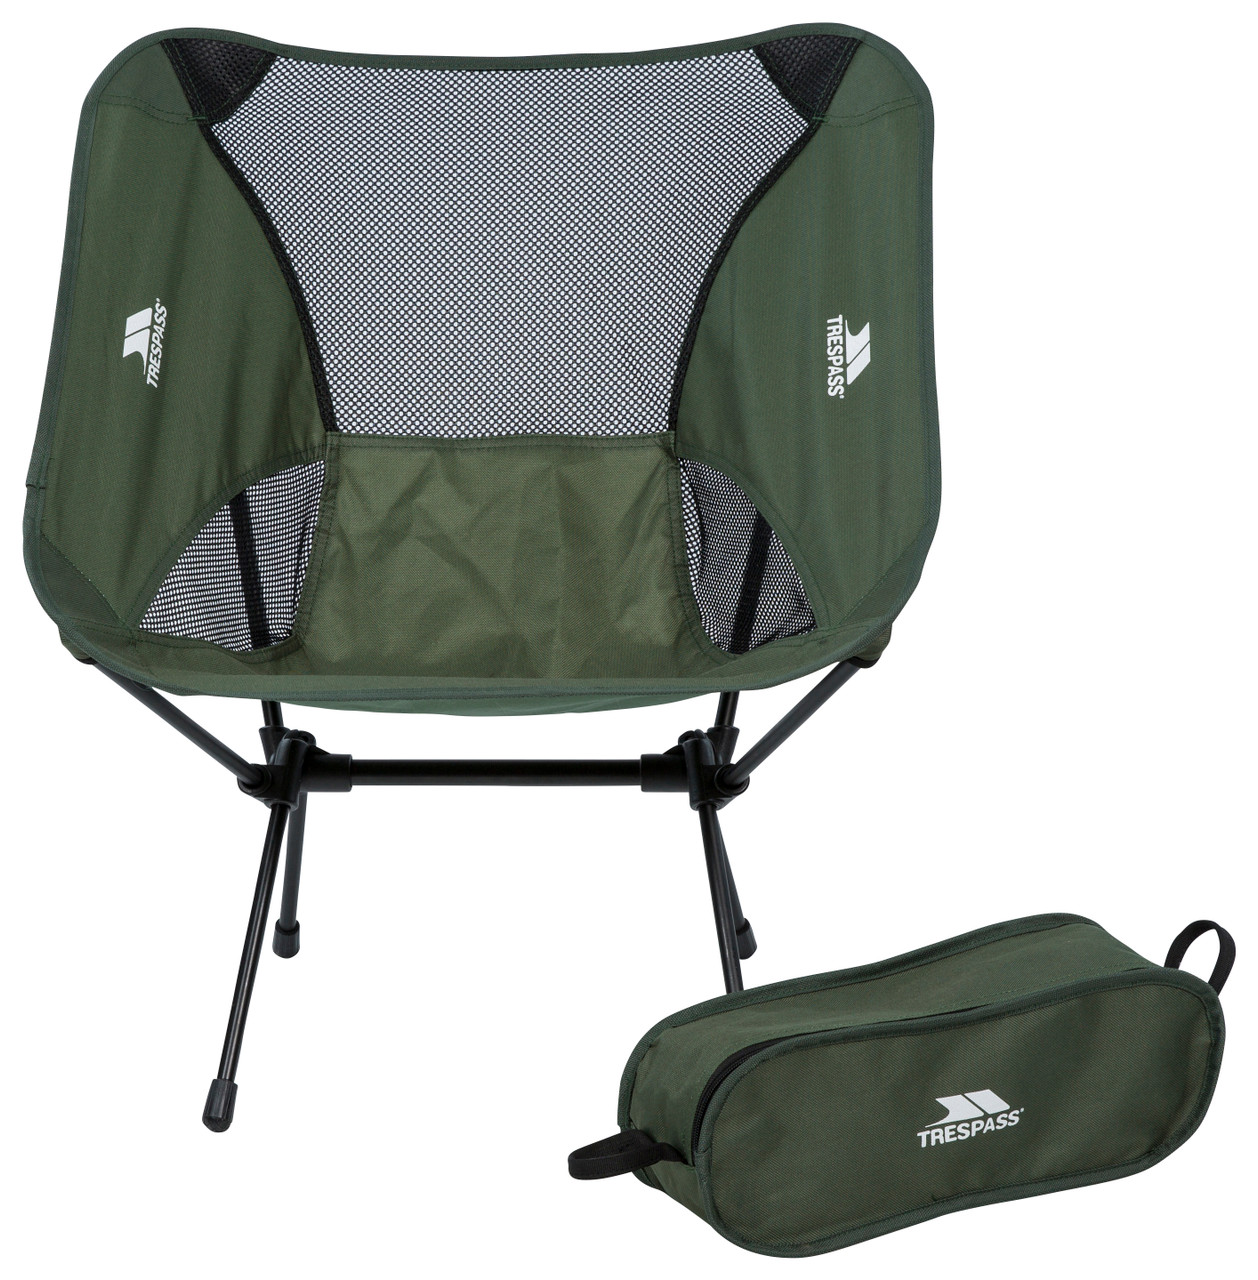 Remarkable Perch Lightweight Portable Folding Chair Pdpeps Interior Chair Design Pdpepsorg